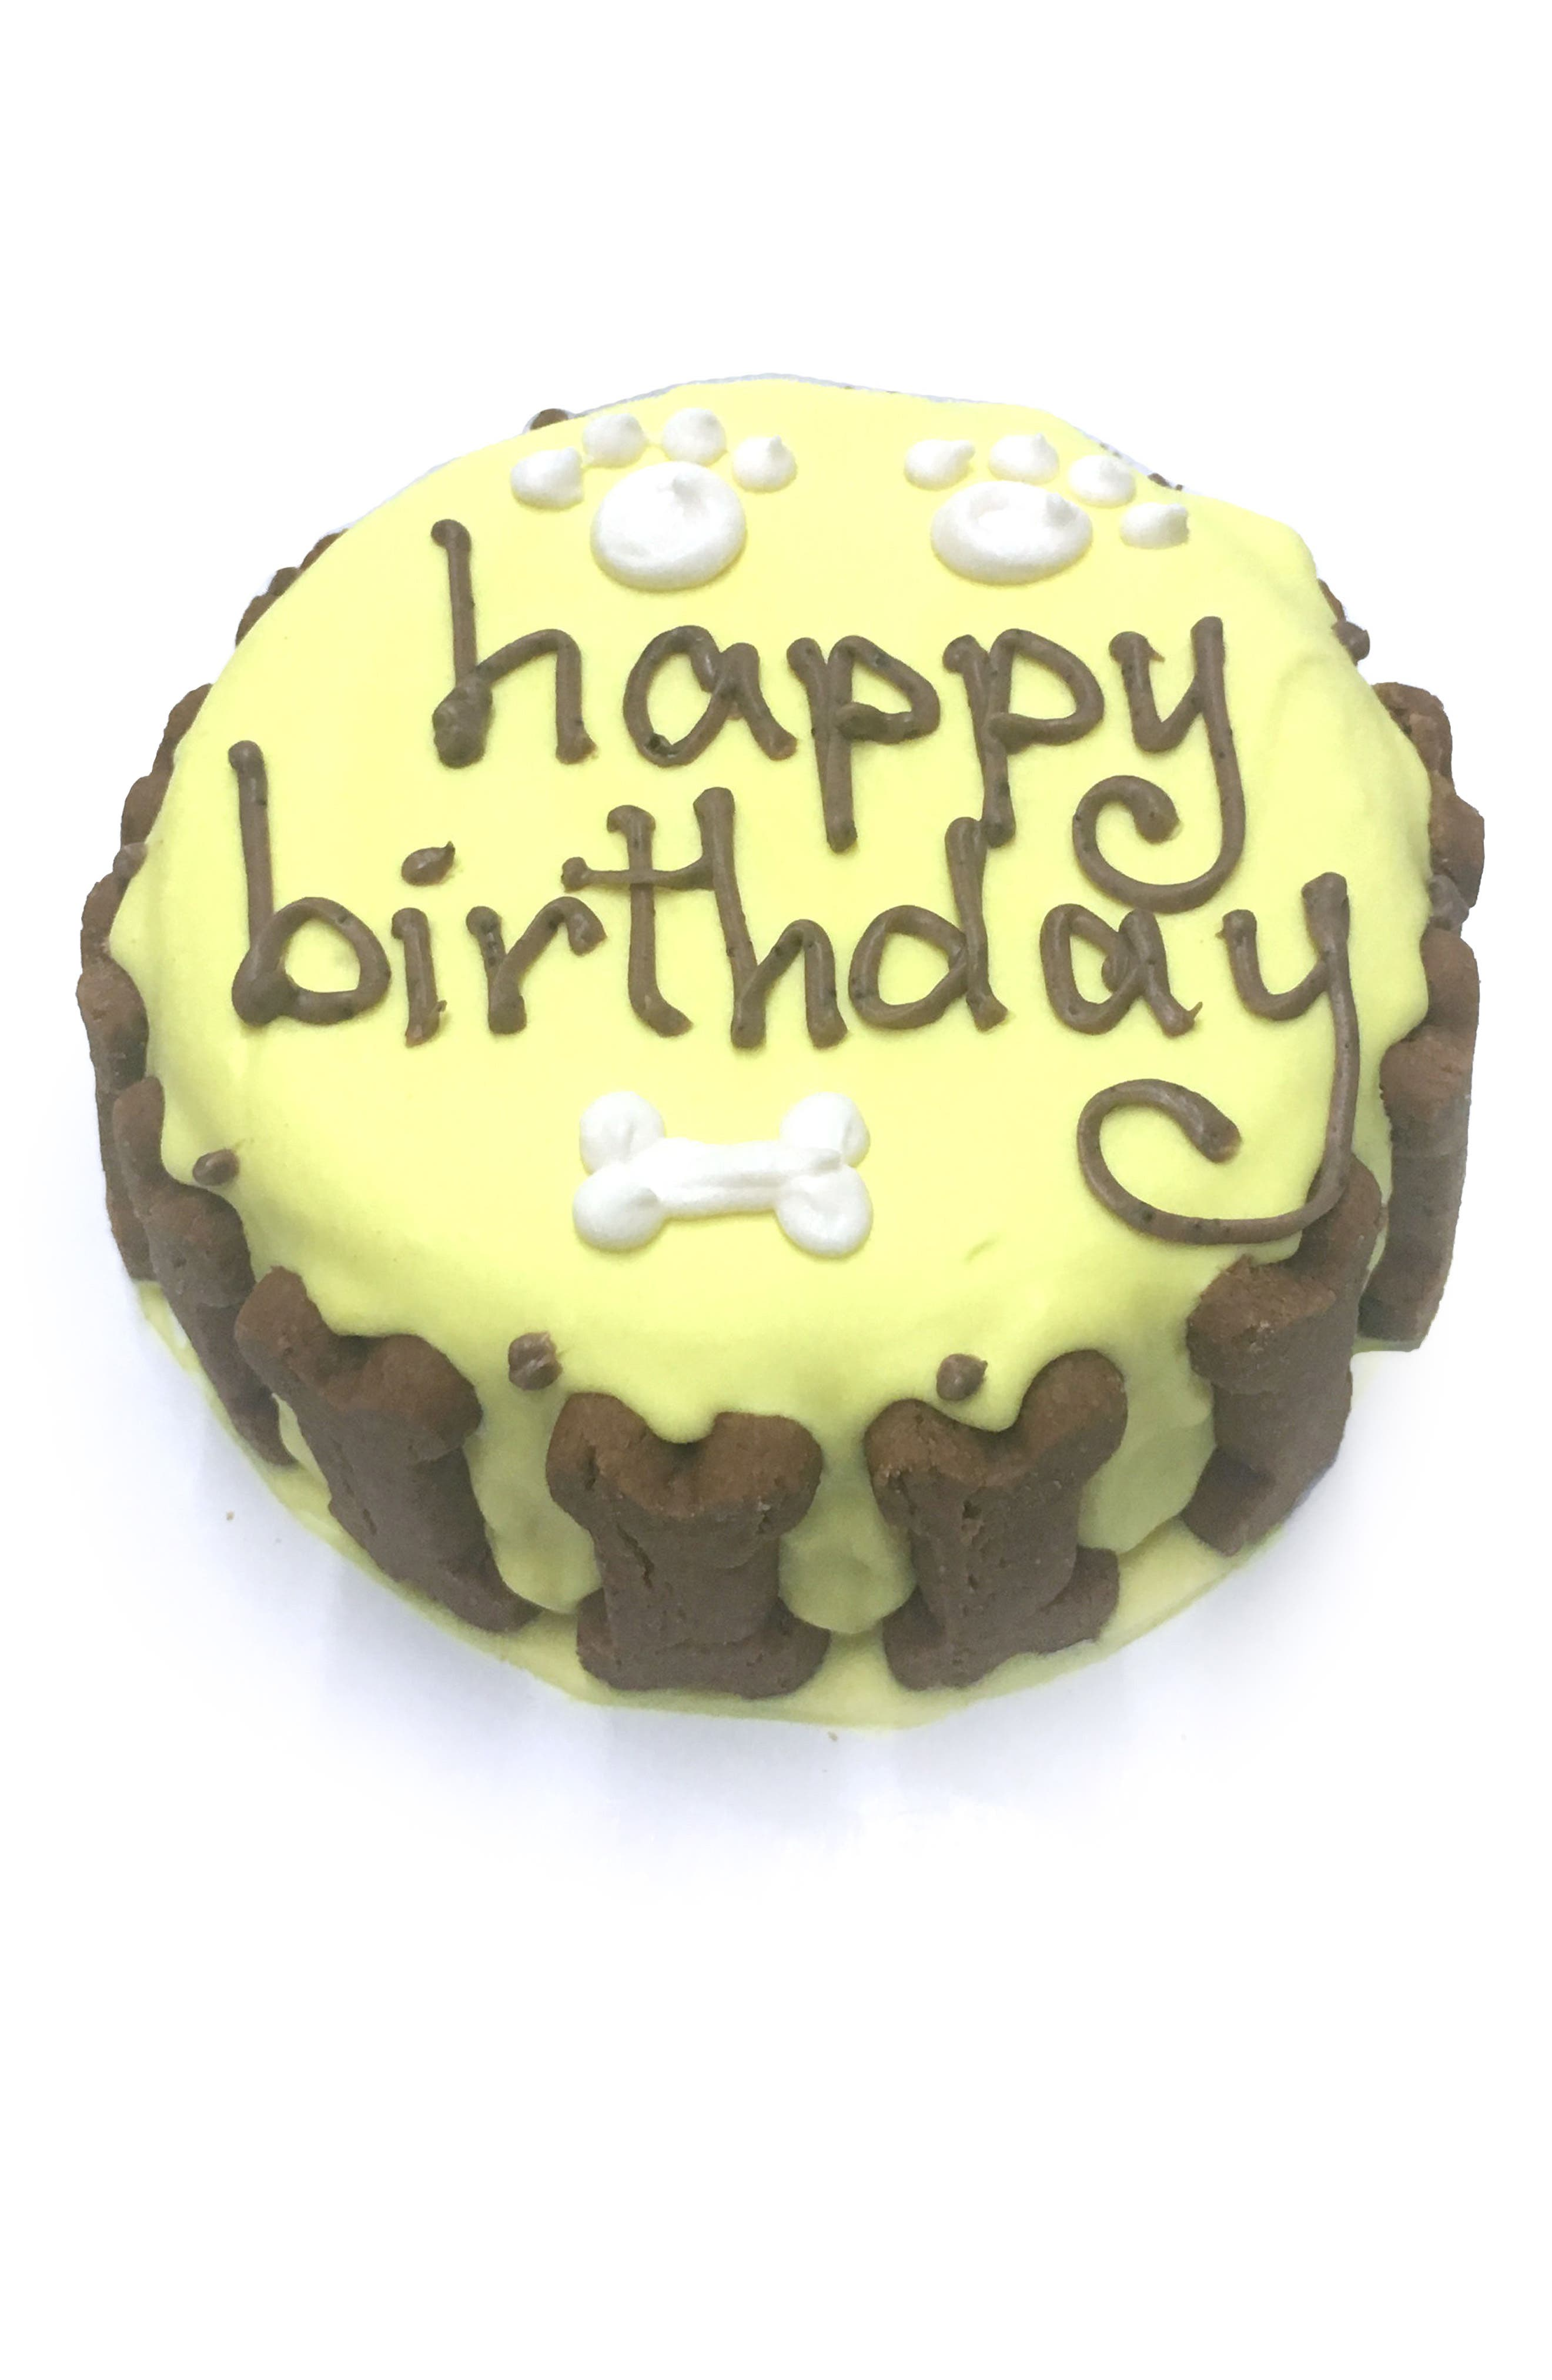 Bubba Rose Biscuit Company Yellow Classic Birthday Cake Dog Treat,                             Main thumbnail 1, color,                             YELLOW